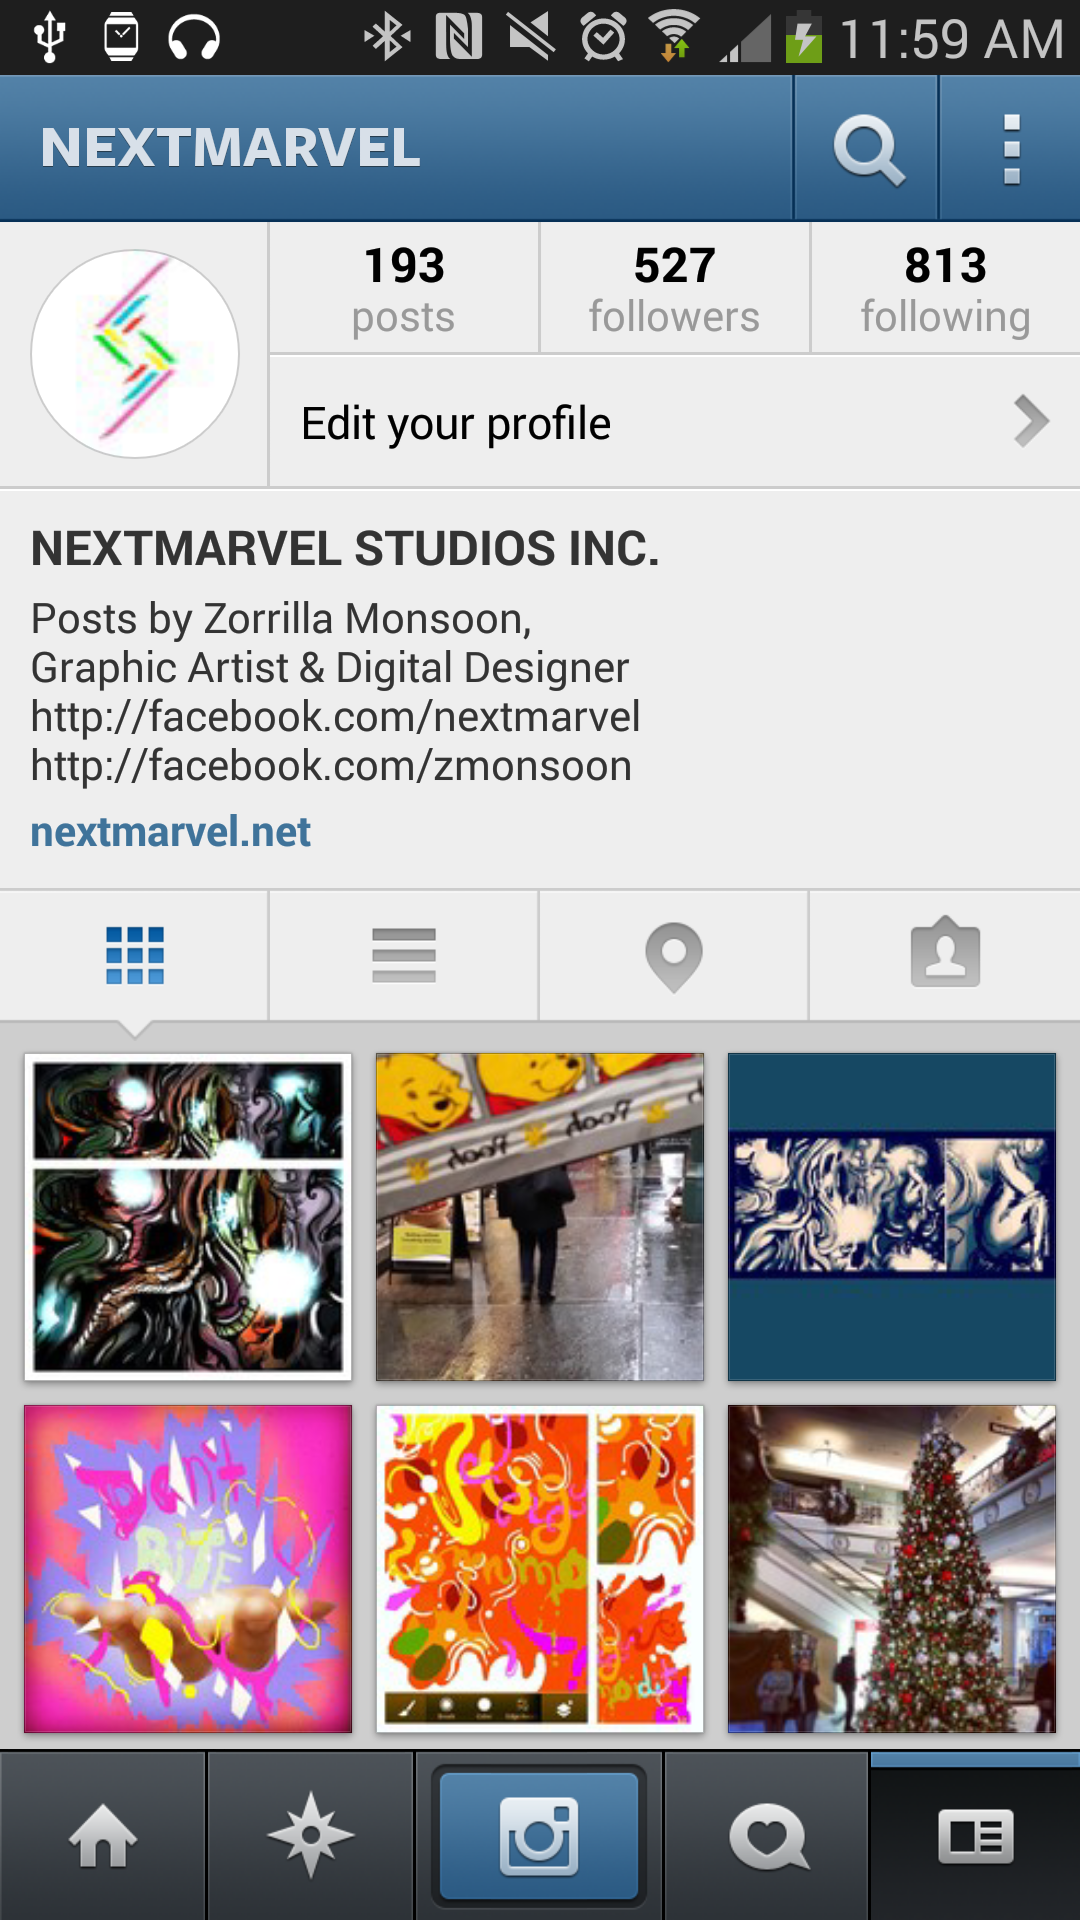 nextmarvel, samsung galaxy note iii 3, samsung galaxy note iii 2, mobile, social media, instagram, facebook, settings